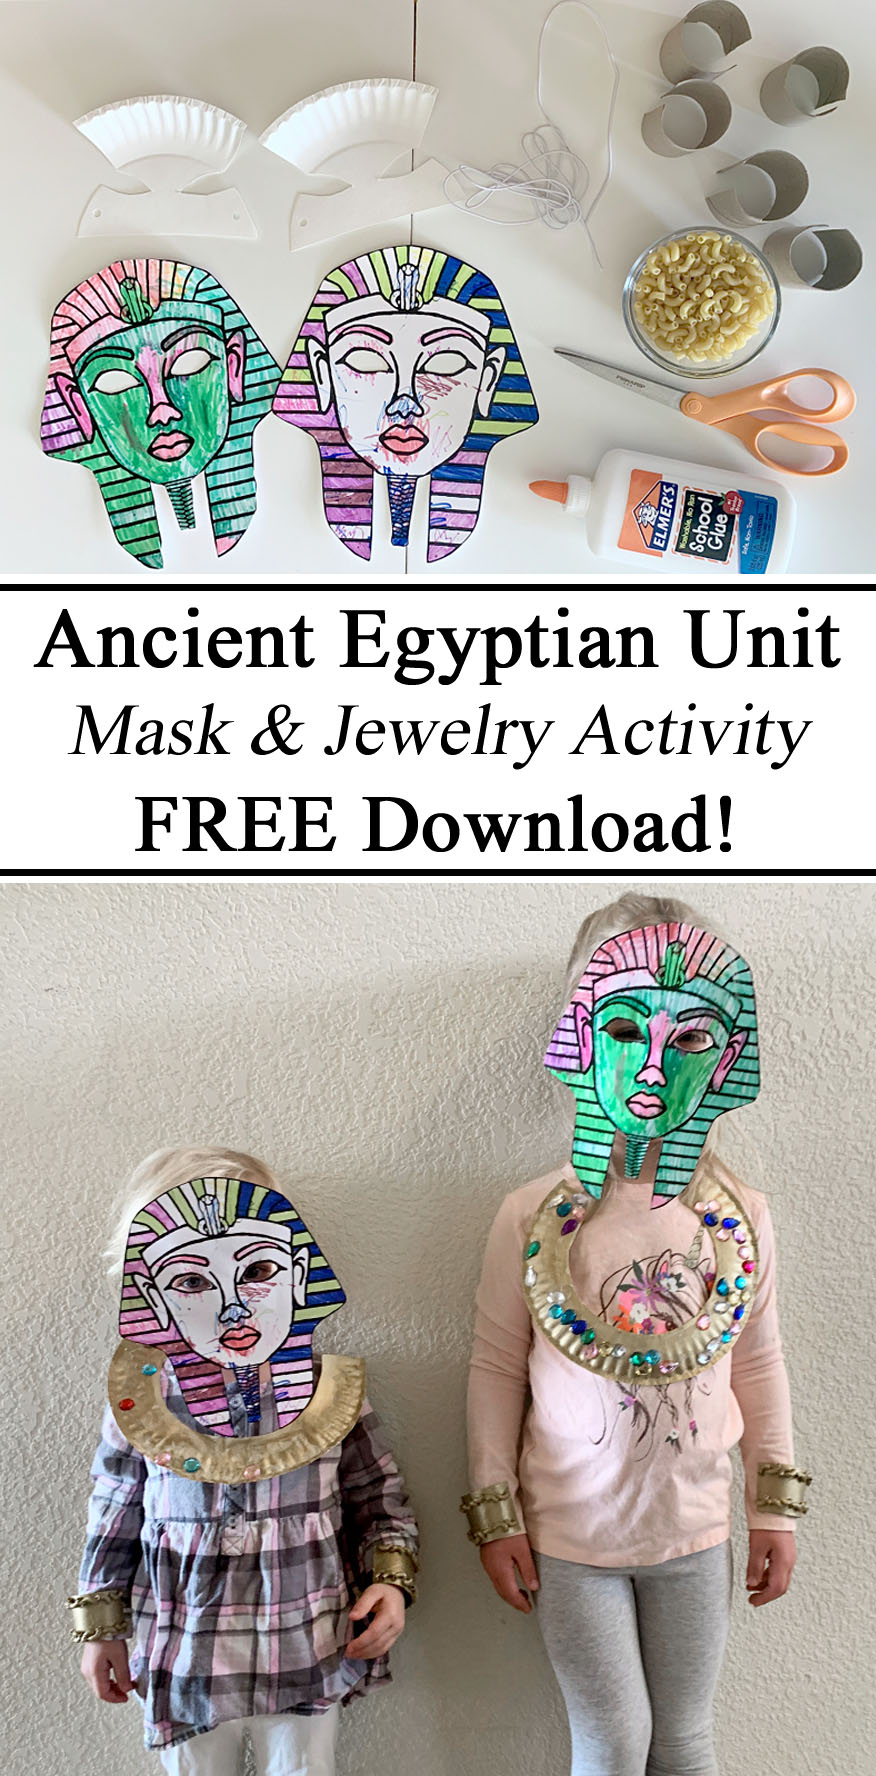 Egypt Egyptian Ancient Unit Study Studies Learning About Little Passports Free Mask Printable Death Jewelry Toilet Paper Tube Macaroni Art Jewels Paper Plate Crafts Ideas Montessori Hands on Learning Free Resources